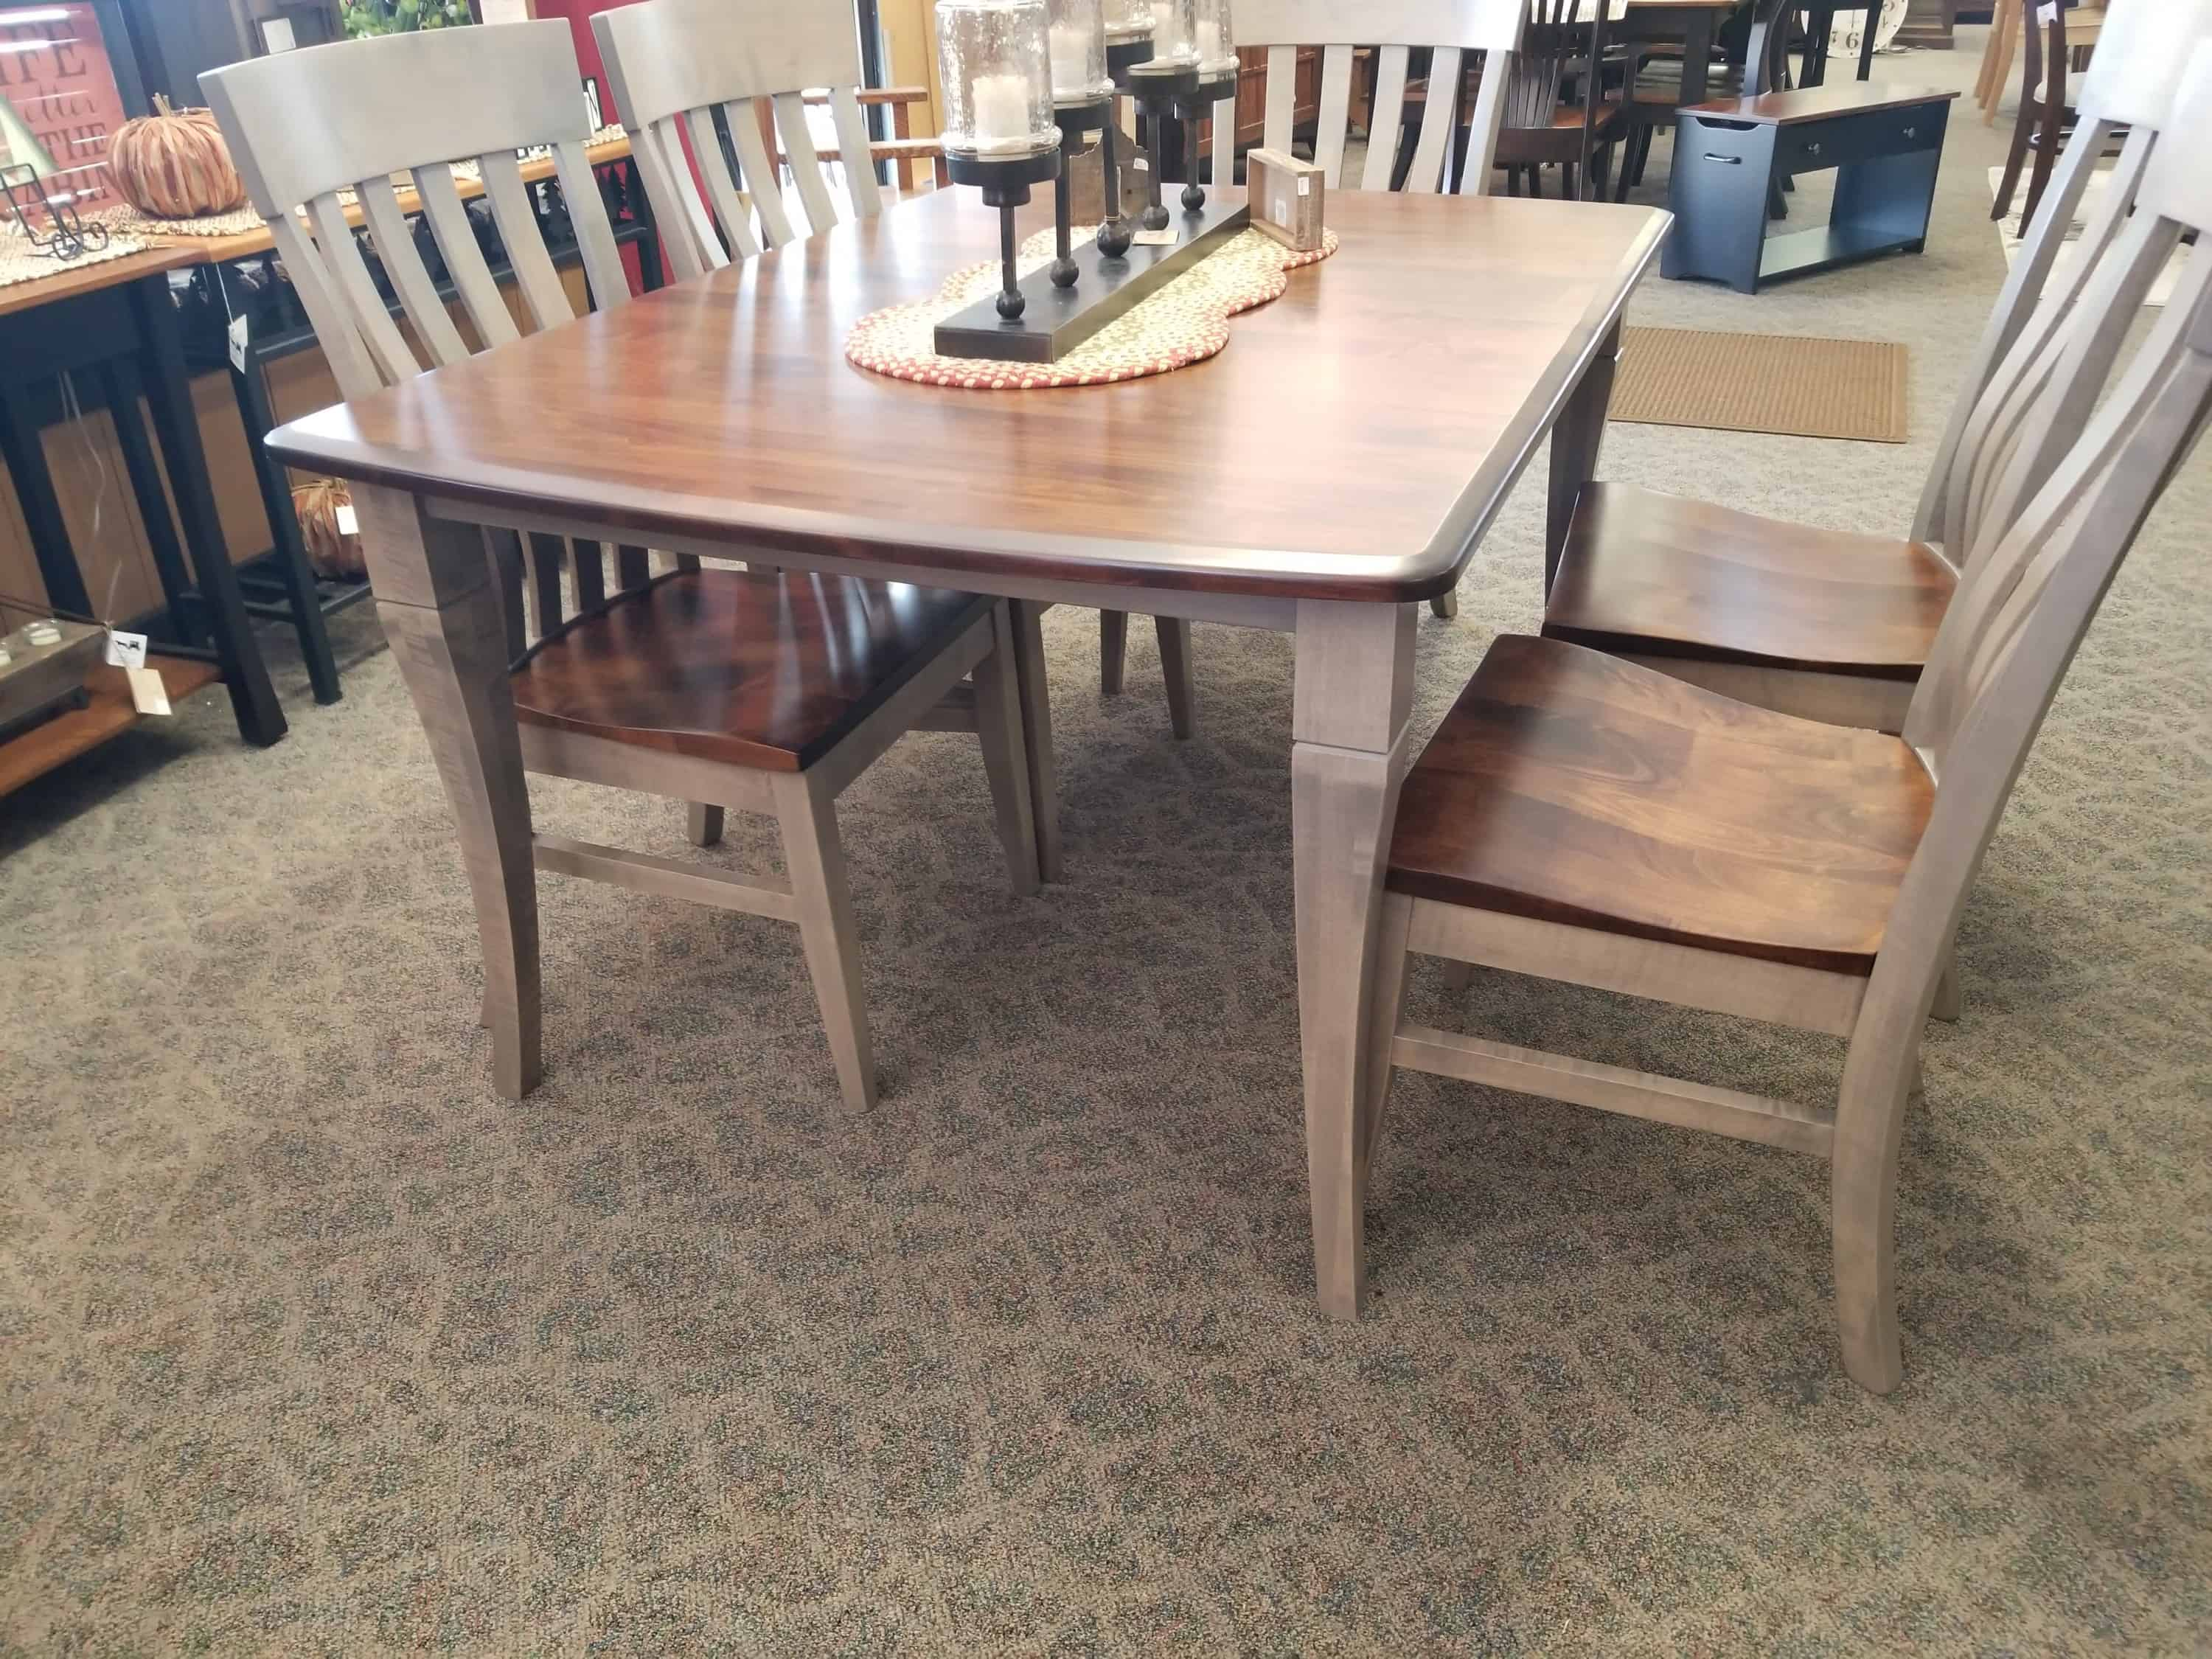 Newbury Dining Table Shown In Brown, Dining Room Set Maple